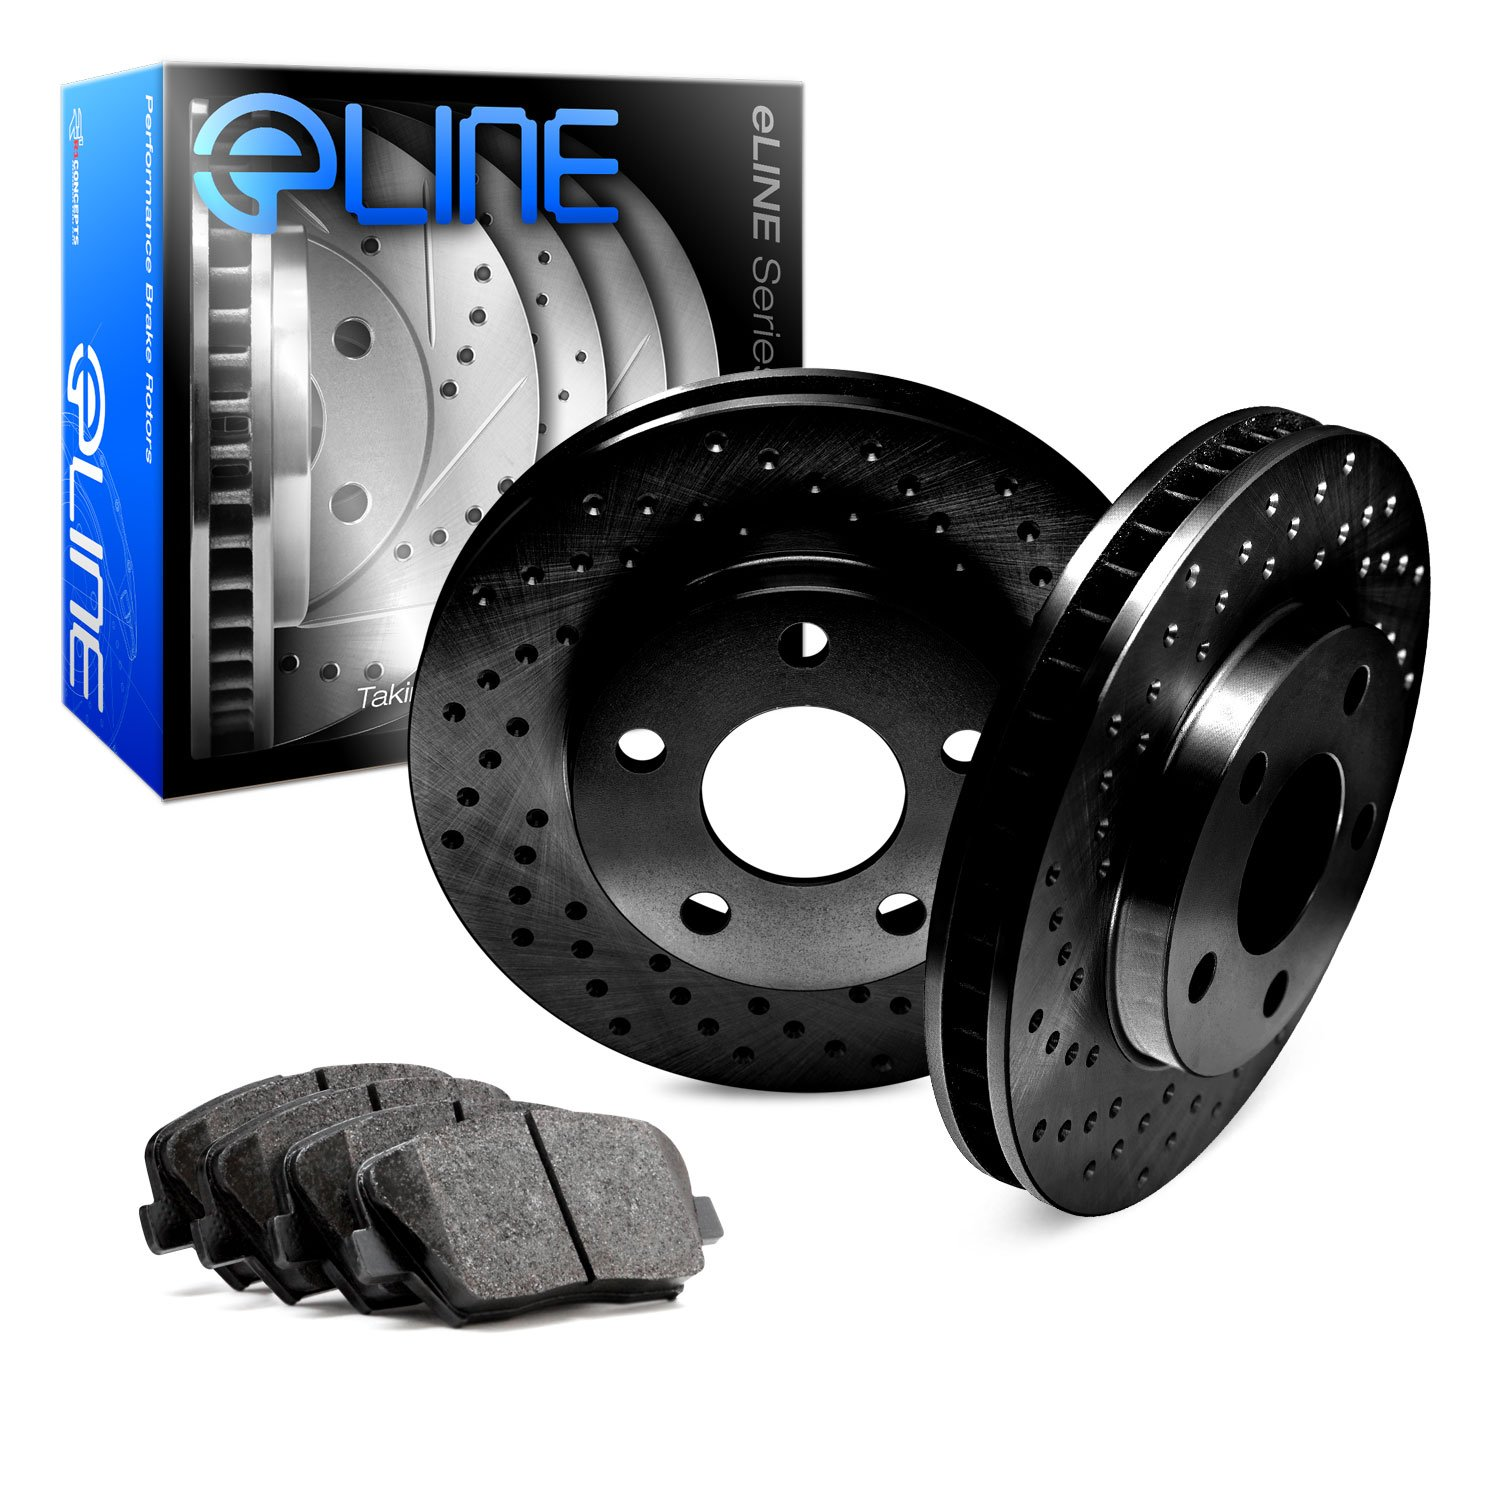 [REAR] Black Edition Cross-Drilled Brake Rotors & Semi-Met Brake Pad RBX.4004602 by R1 Concepts (Image #1)